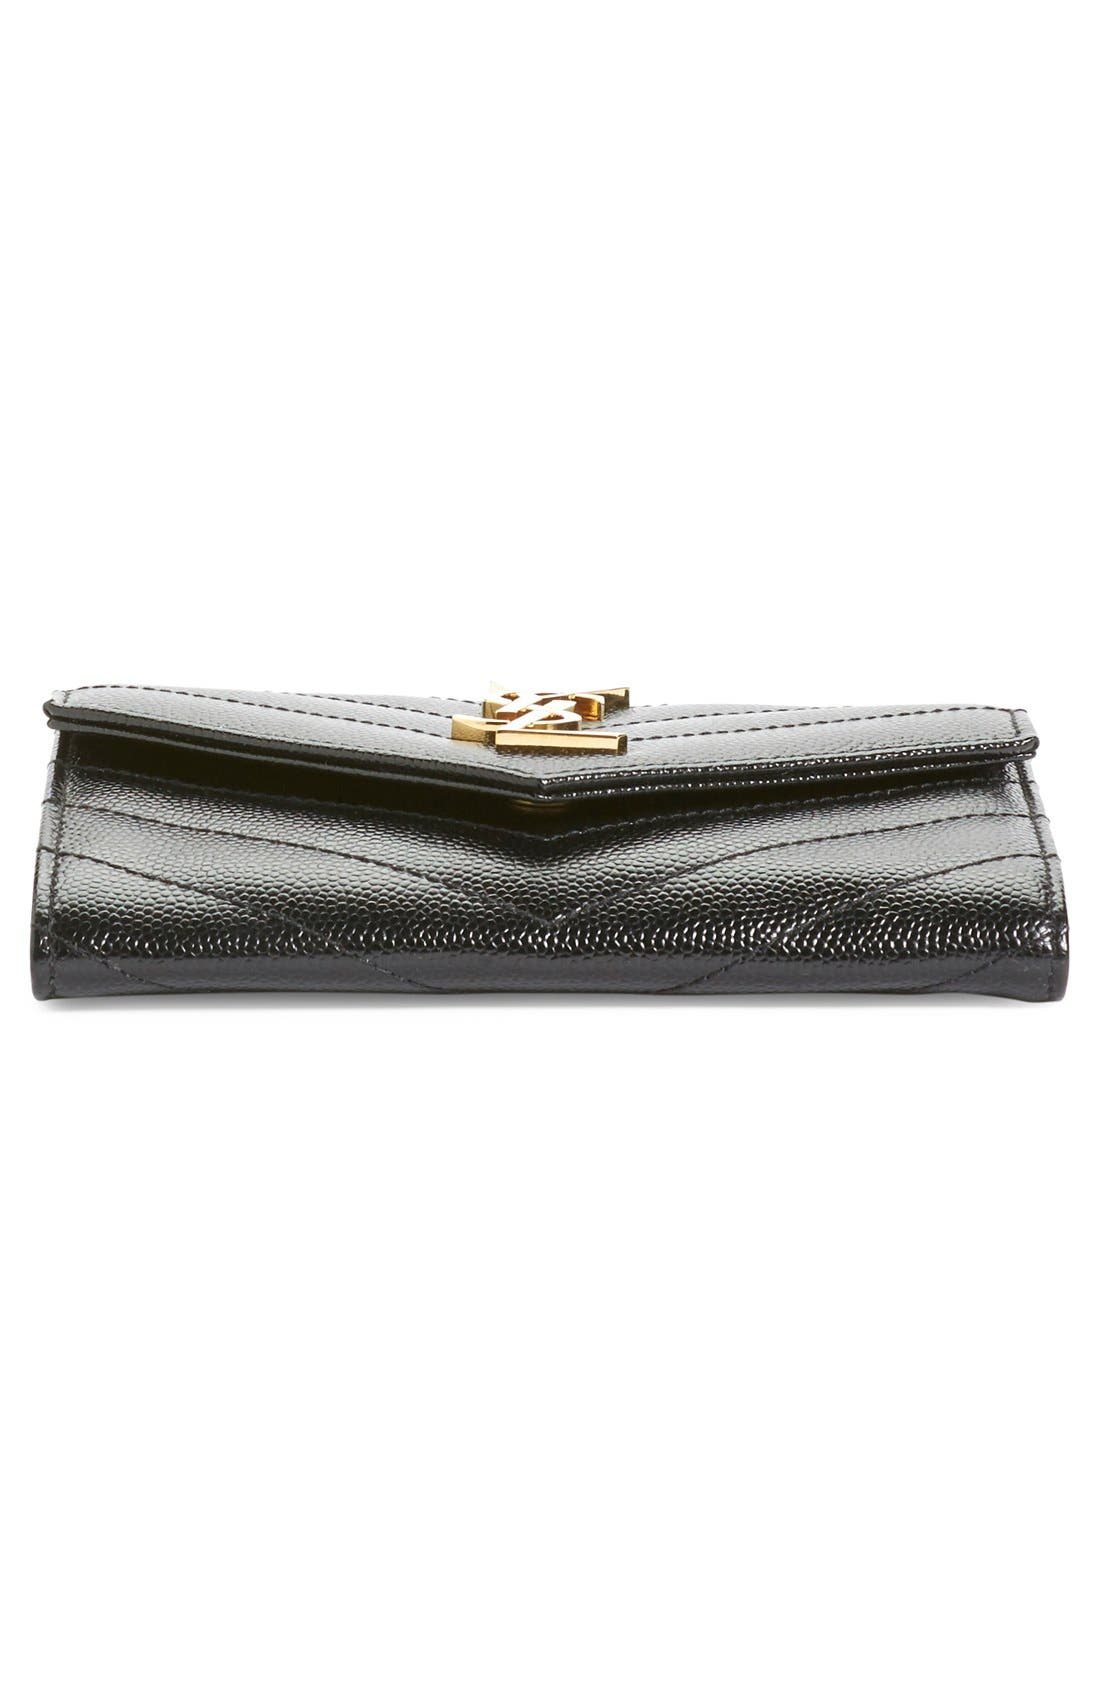 'Monogram' Quilted Leather French Wallet,                             Alternate thumbnail 5, color,                             Noir